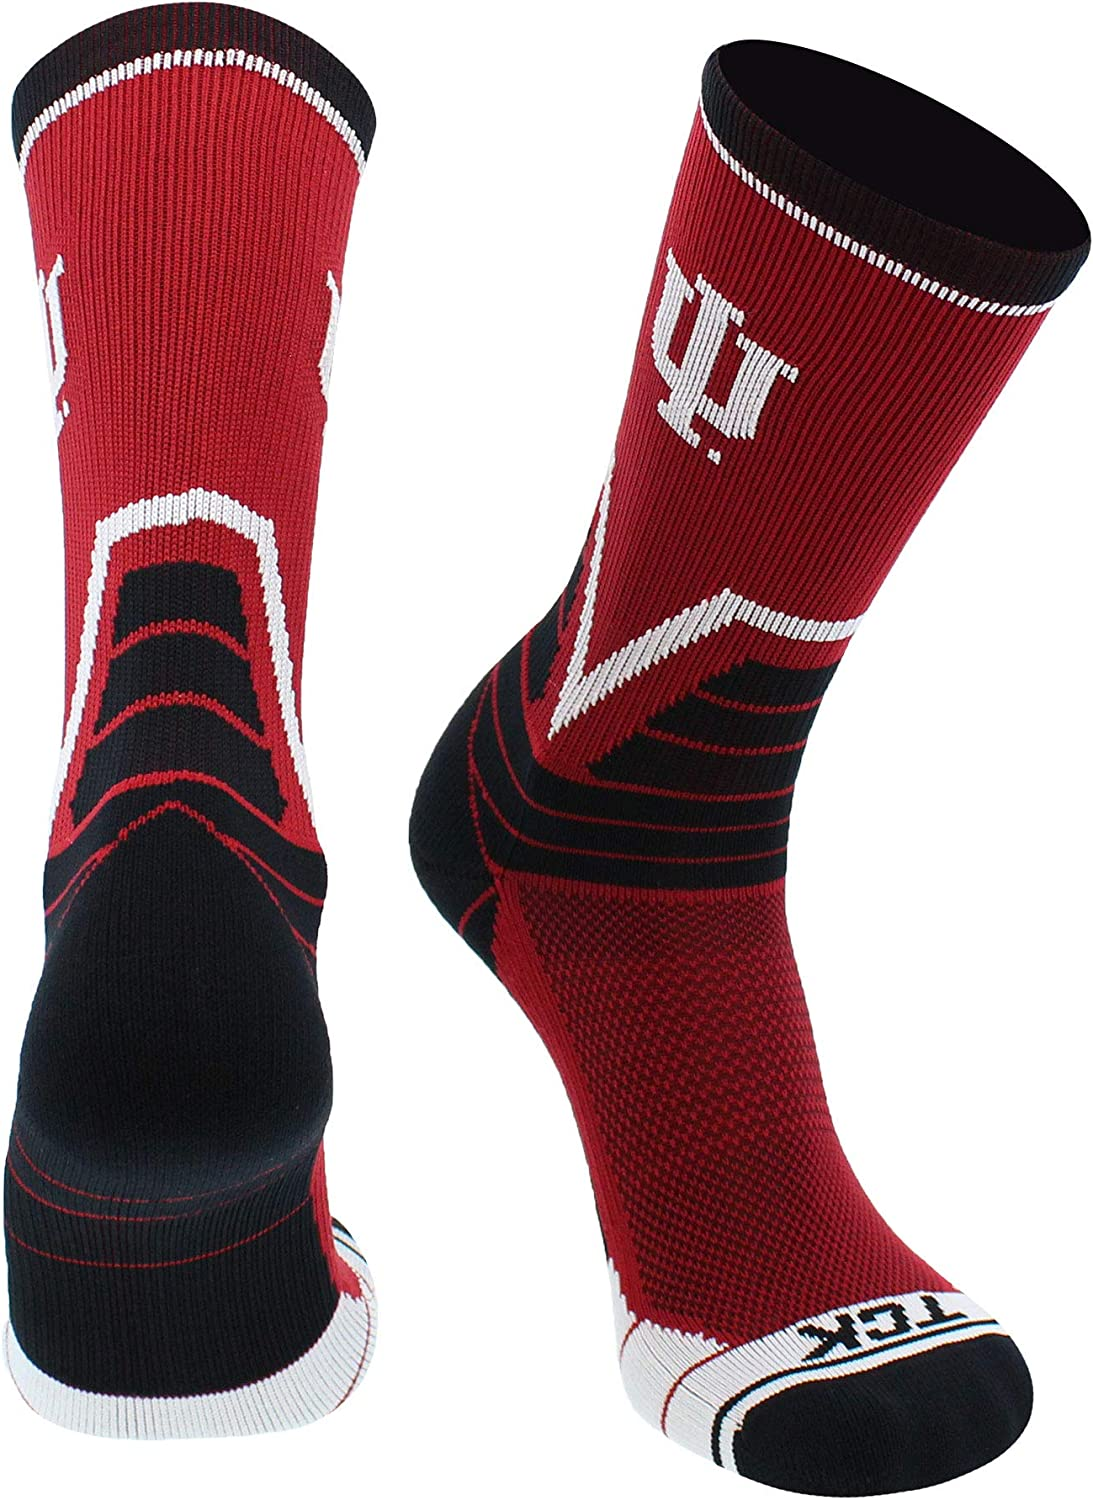 TCK Indiana Hoosiers Directly managed Import store Crew Socks Victory